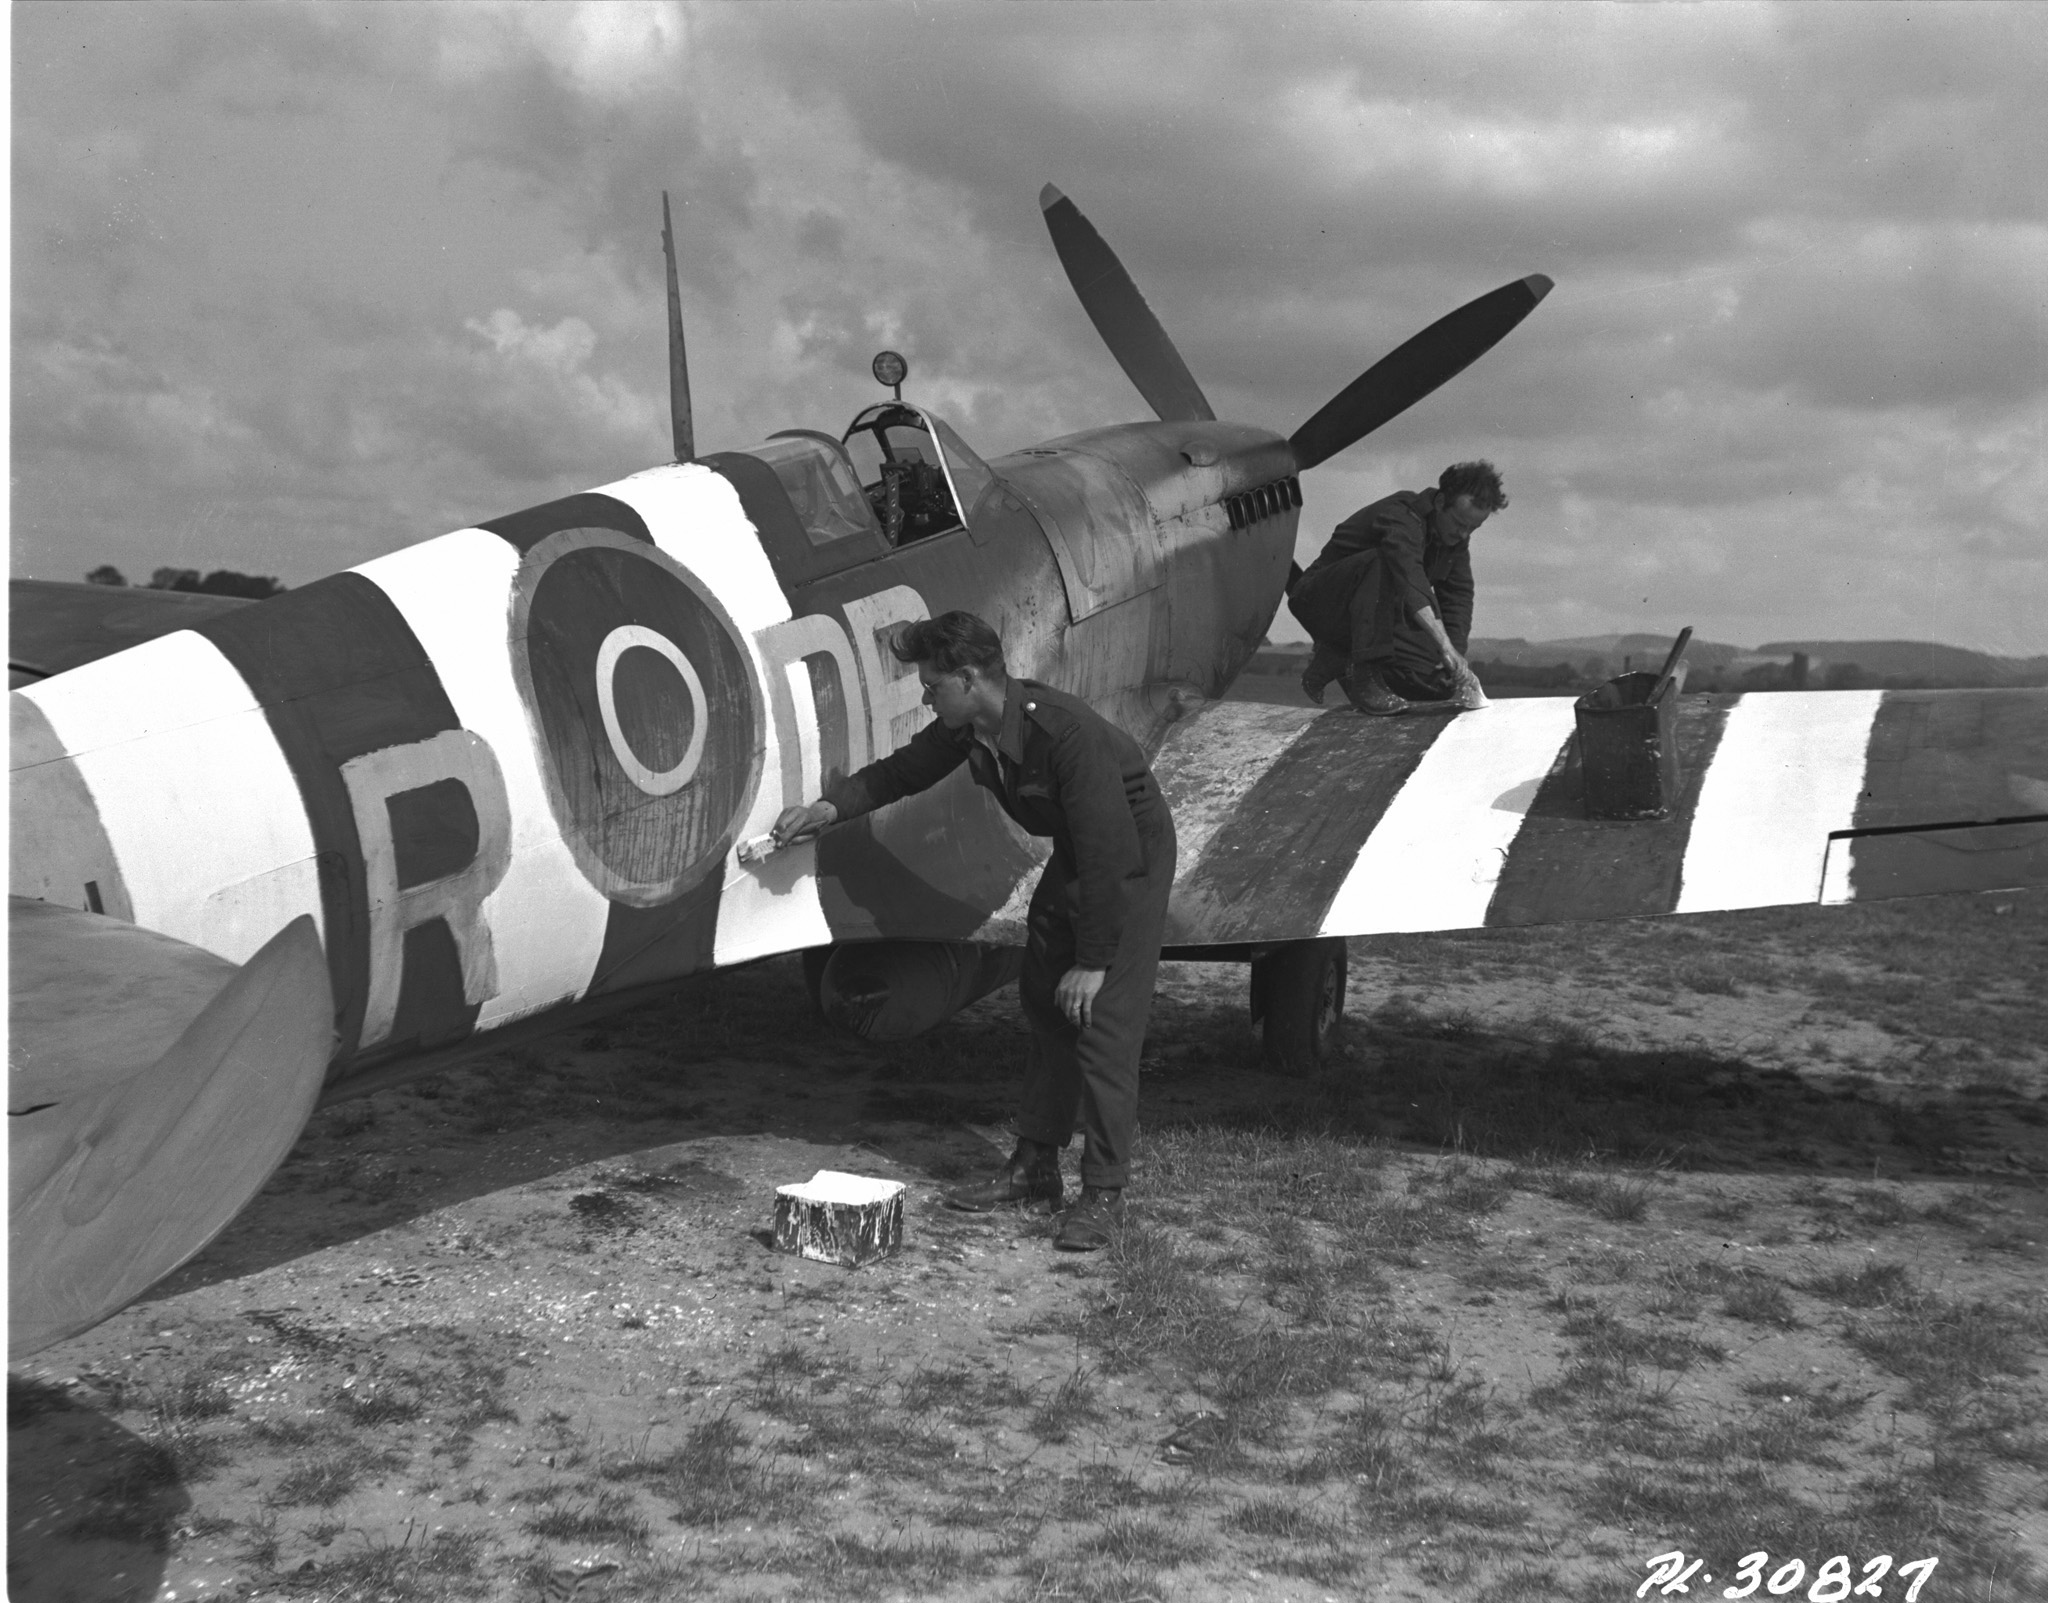 "These two RCAF men had a big job on their hands, painting the black and white recognition design on allied aircraft in advance of the D-Day assault. The Spitfire in the picture belonged to No. 402 ""Bear"" Squadron, one of the Canadian fighter wings. (dnd)"